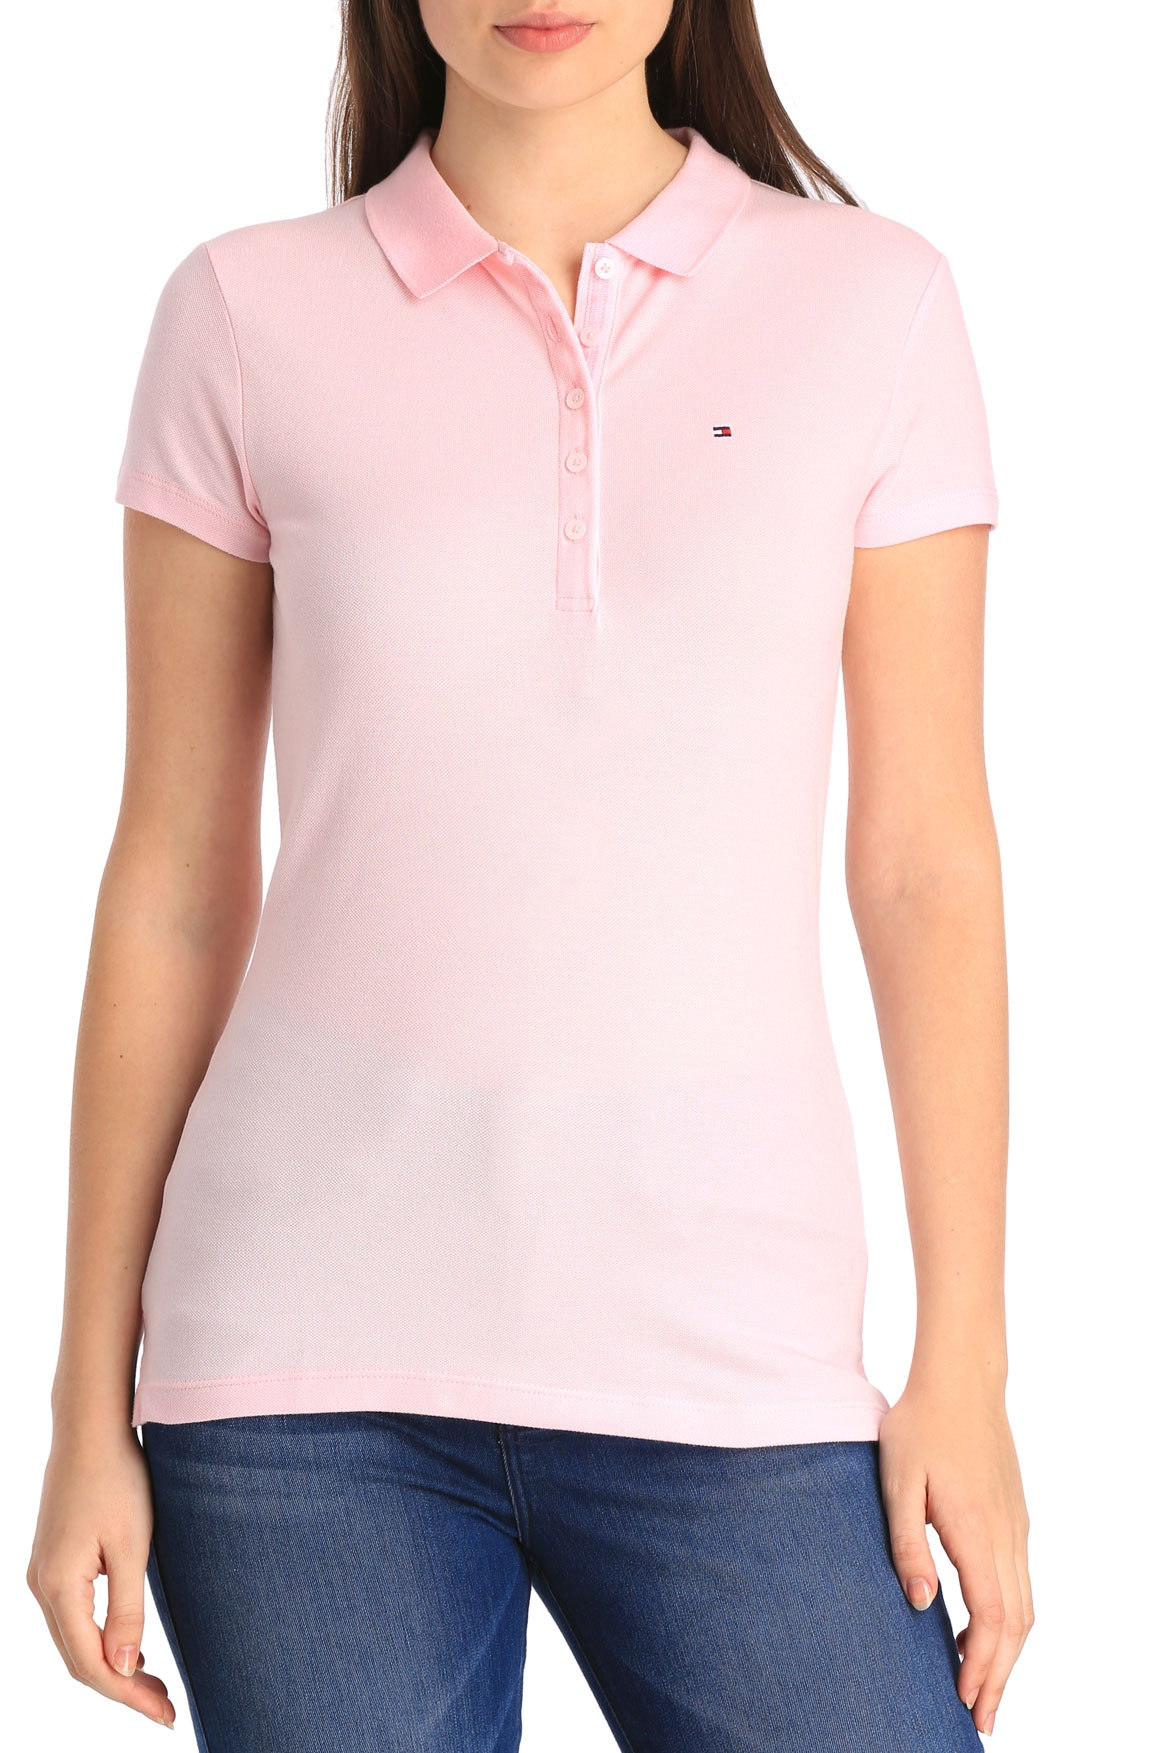 404be16d9 ralph lauren womens shirts myer polo baby clothing